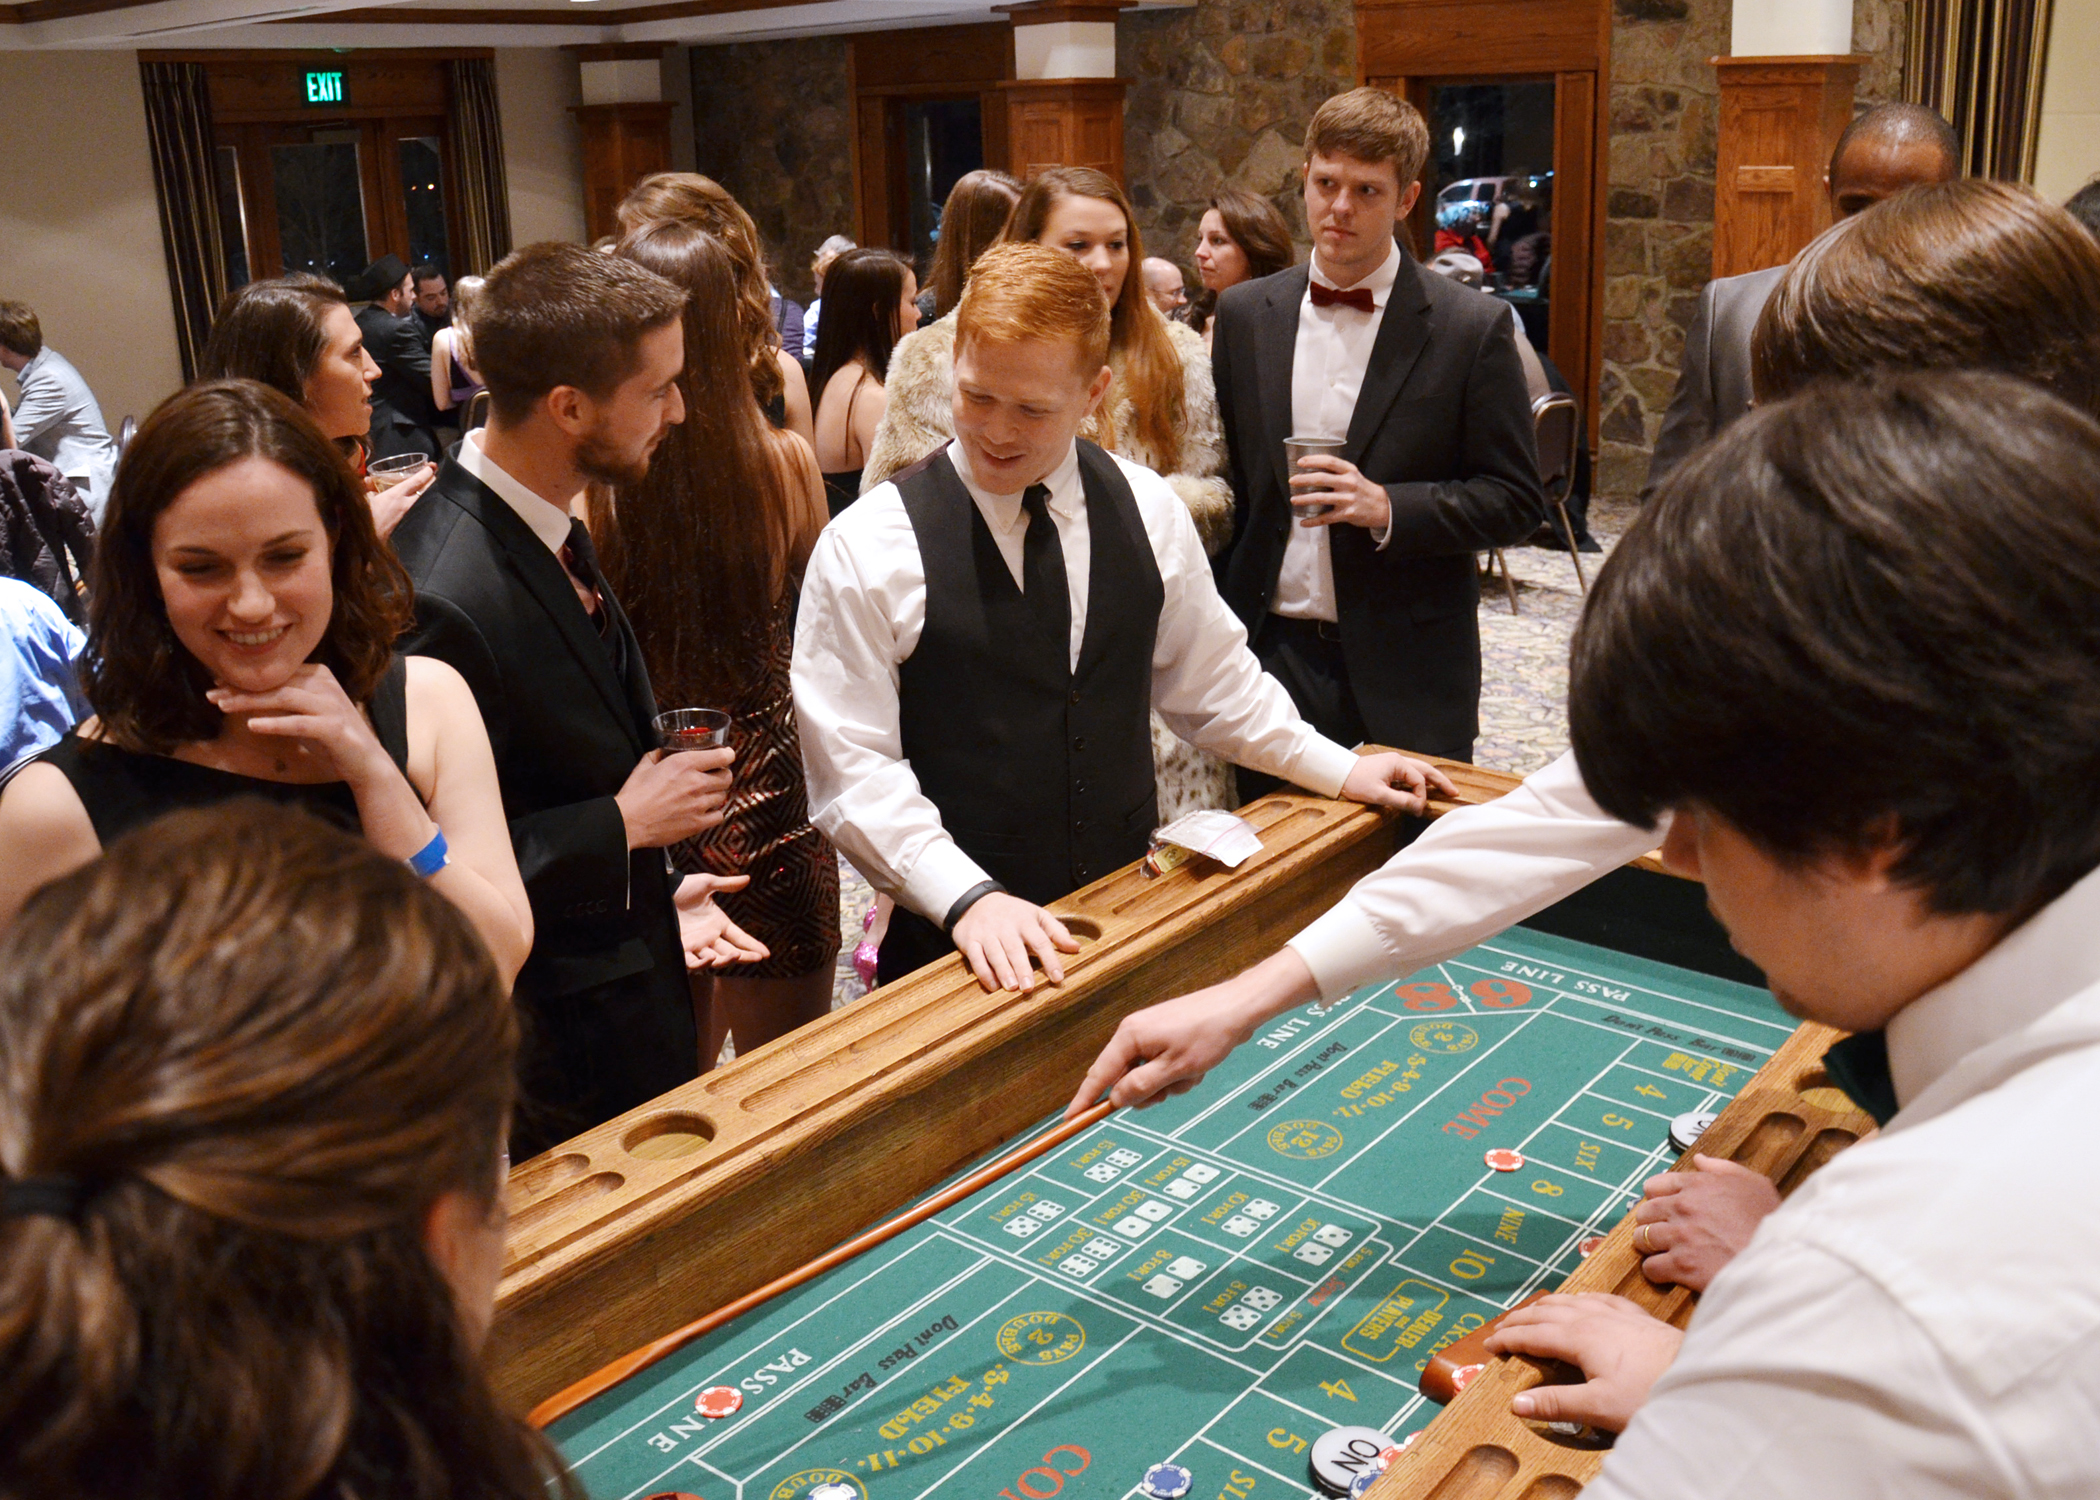 Craps table at Casino Night